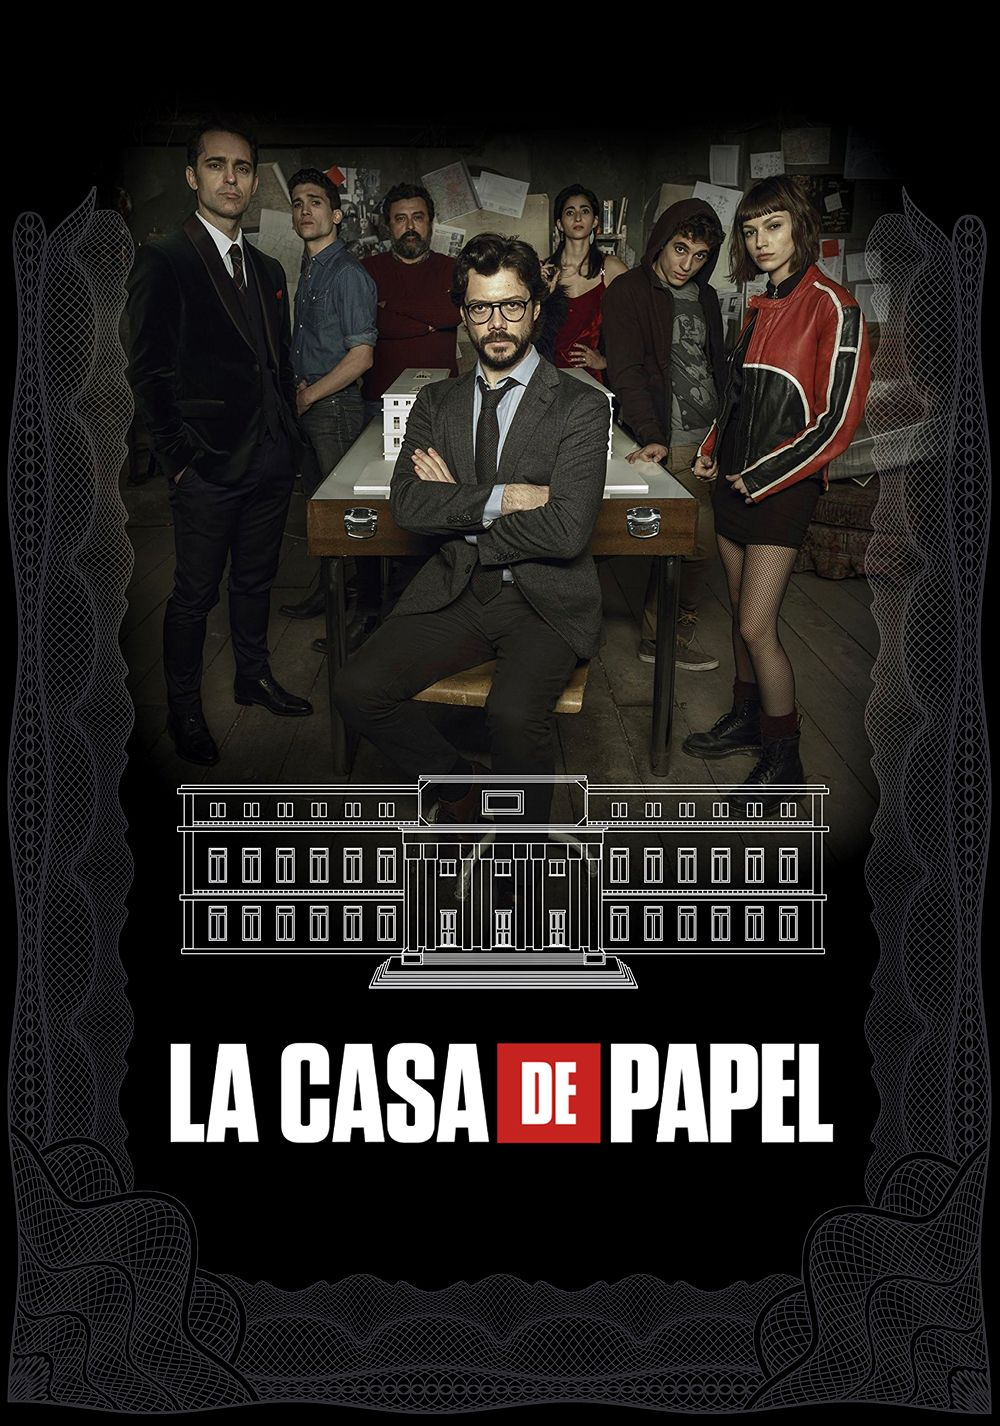 La Casa De Papel The Money Heist Netflix April 6 2018 Season 2